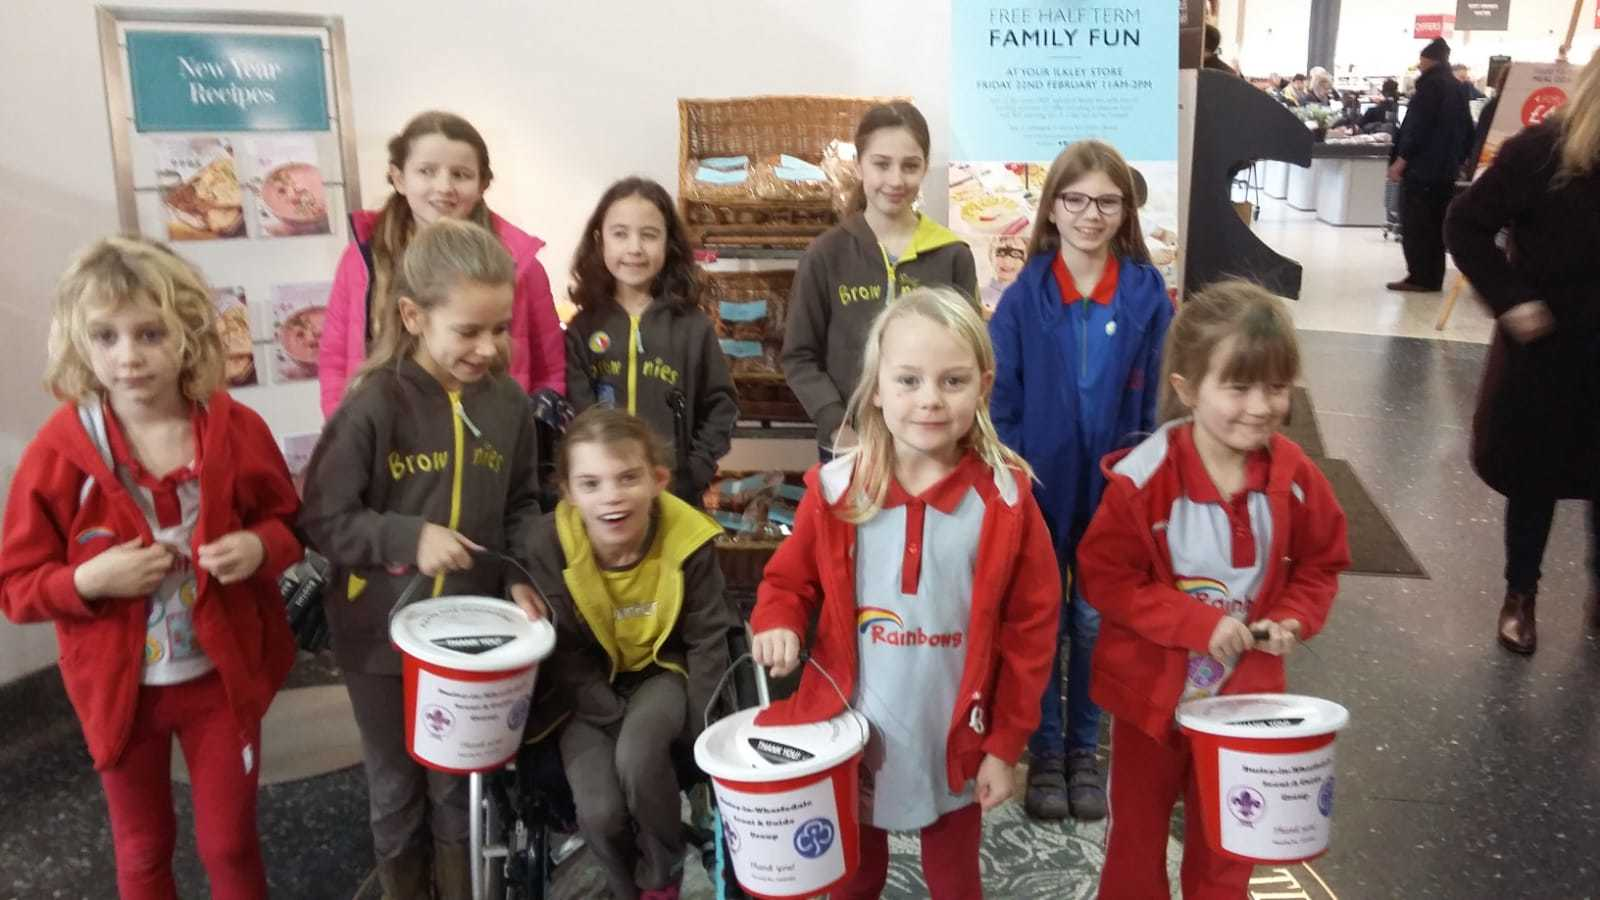 Some of the scouts and guides who took part in the bag pack in Booths Supermarket in Ilkley